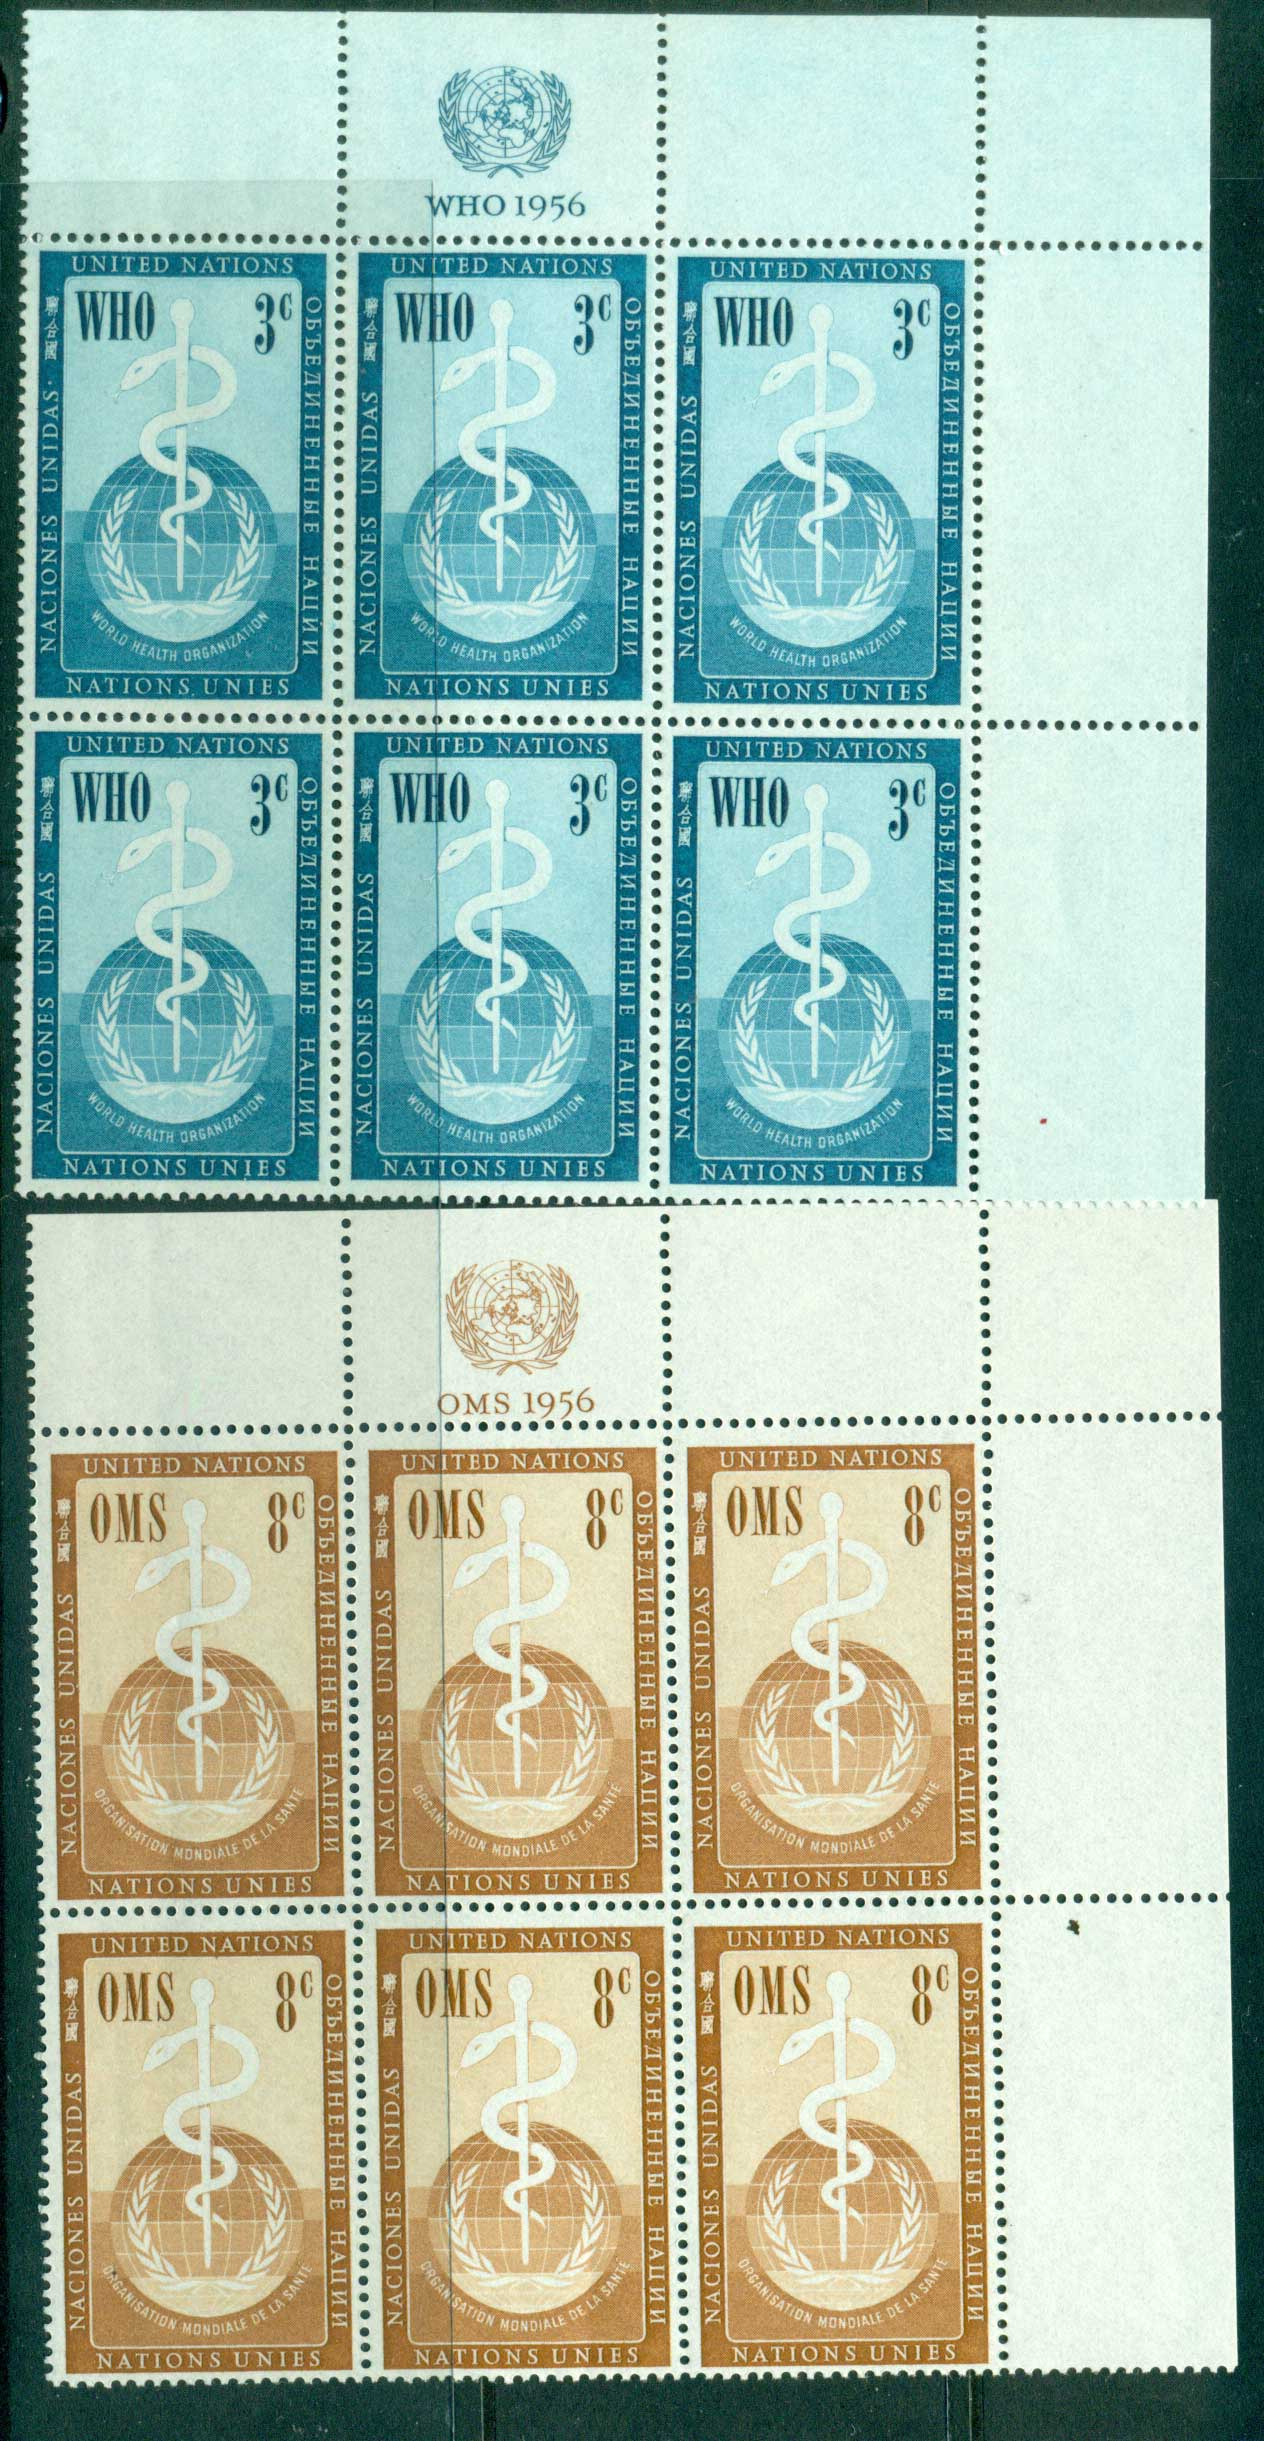 UN New York 1956 Honouring the WHO Imprint Blk 6 MUH lot40886